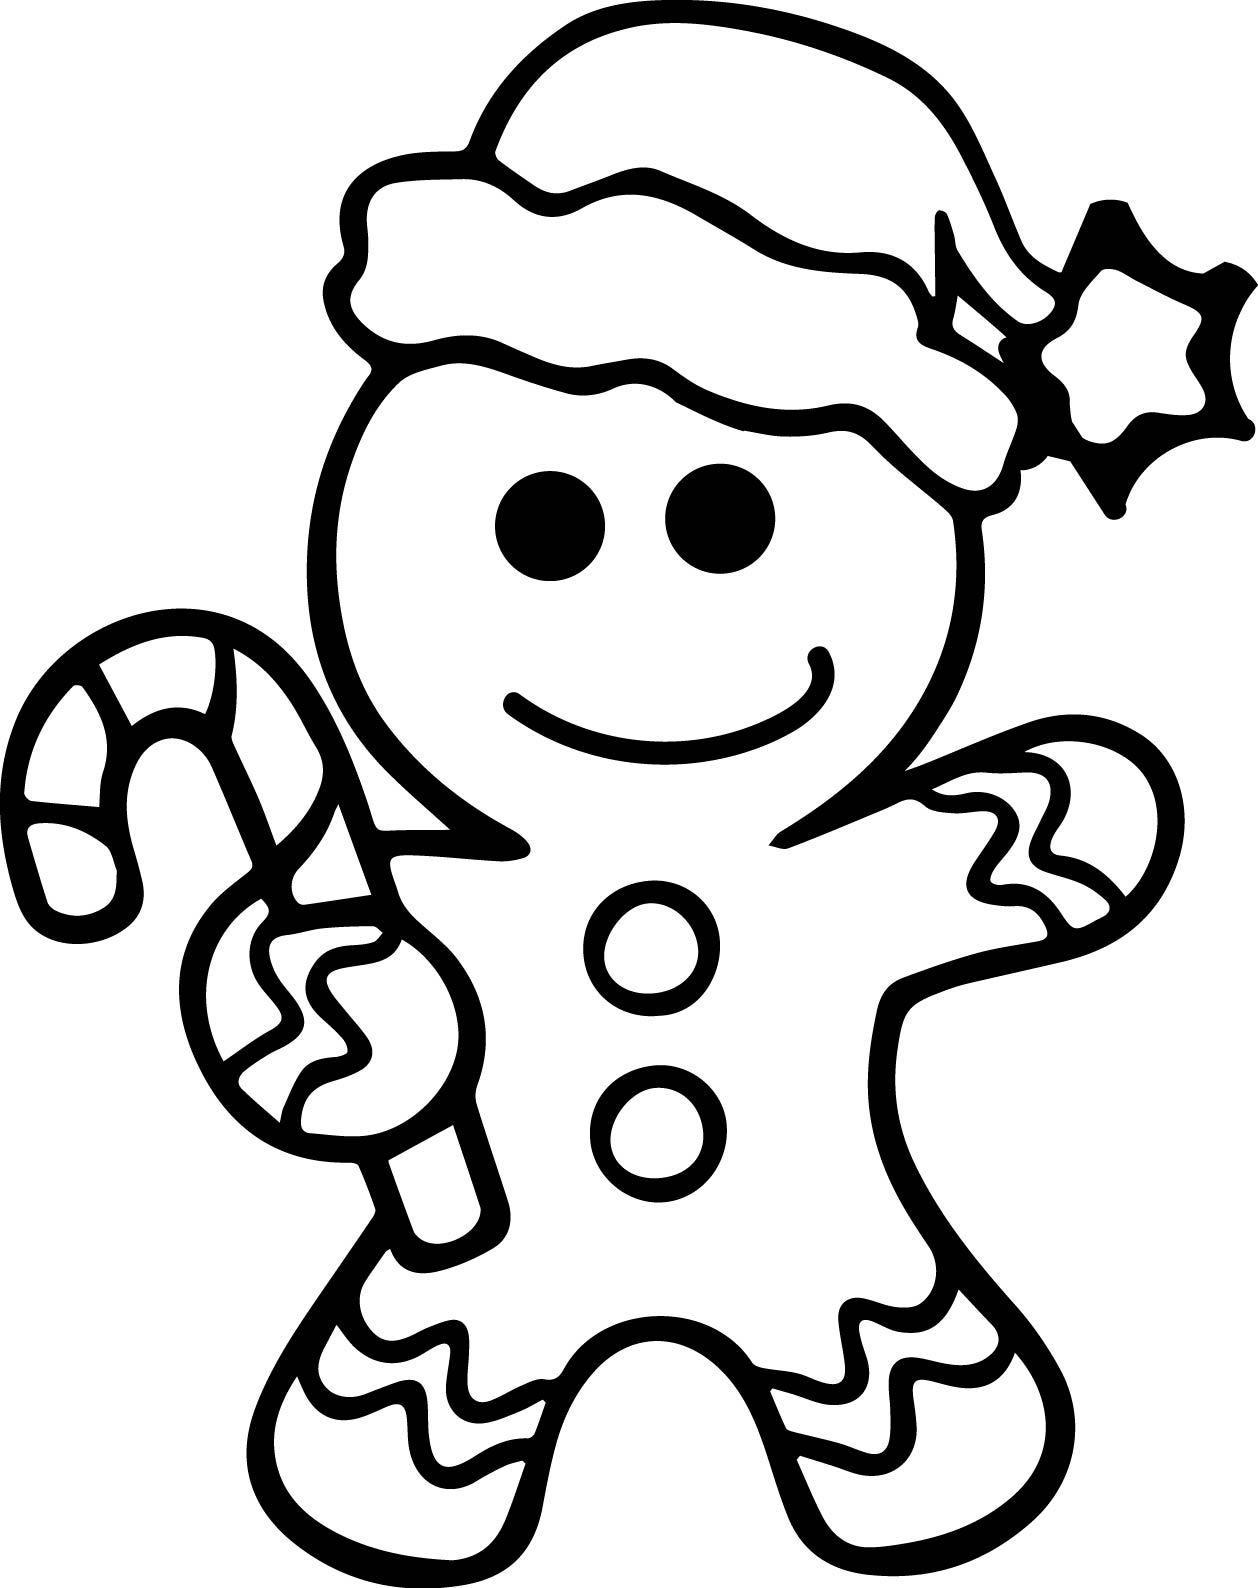 1258x1588 Creative Decoration Gingerbread Printable Gingerb On Gingerbread